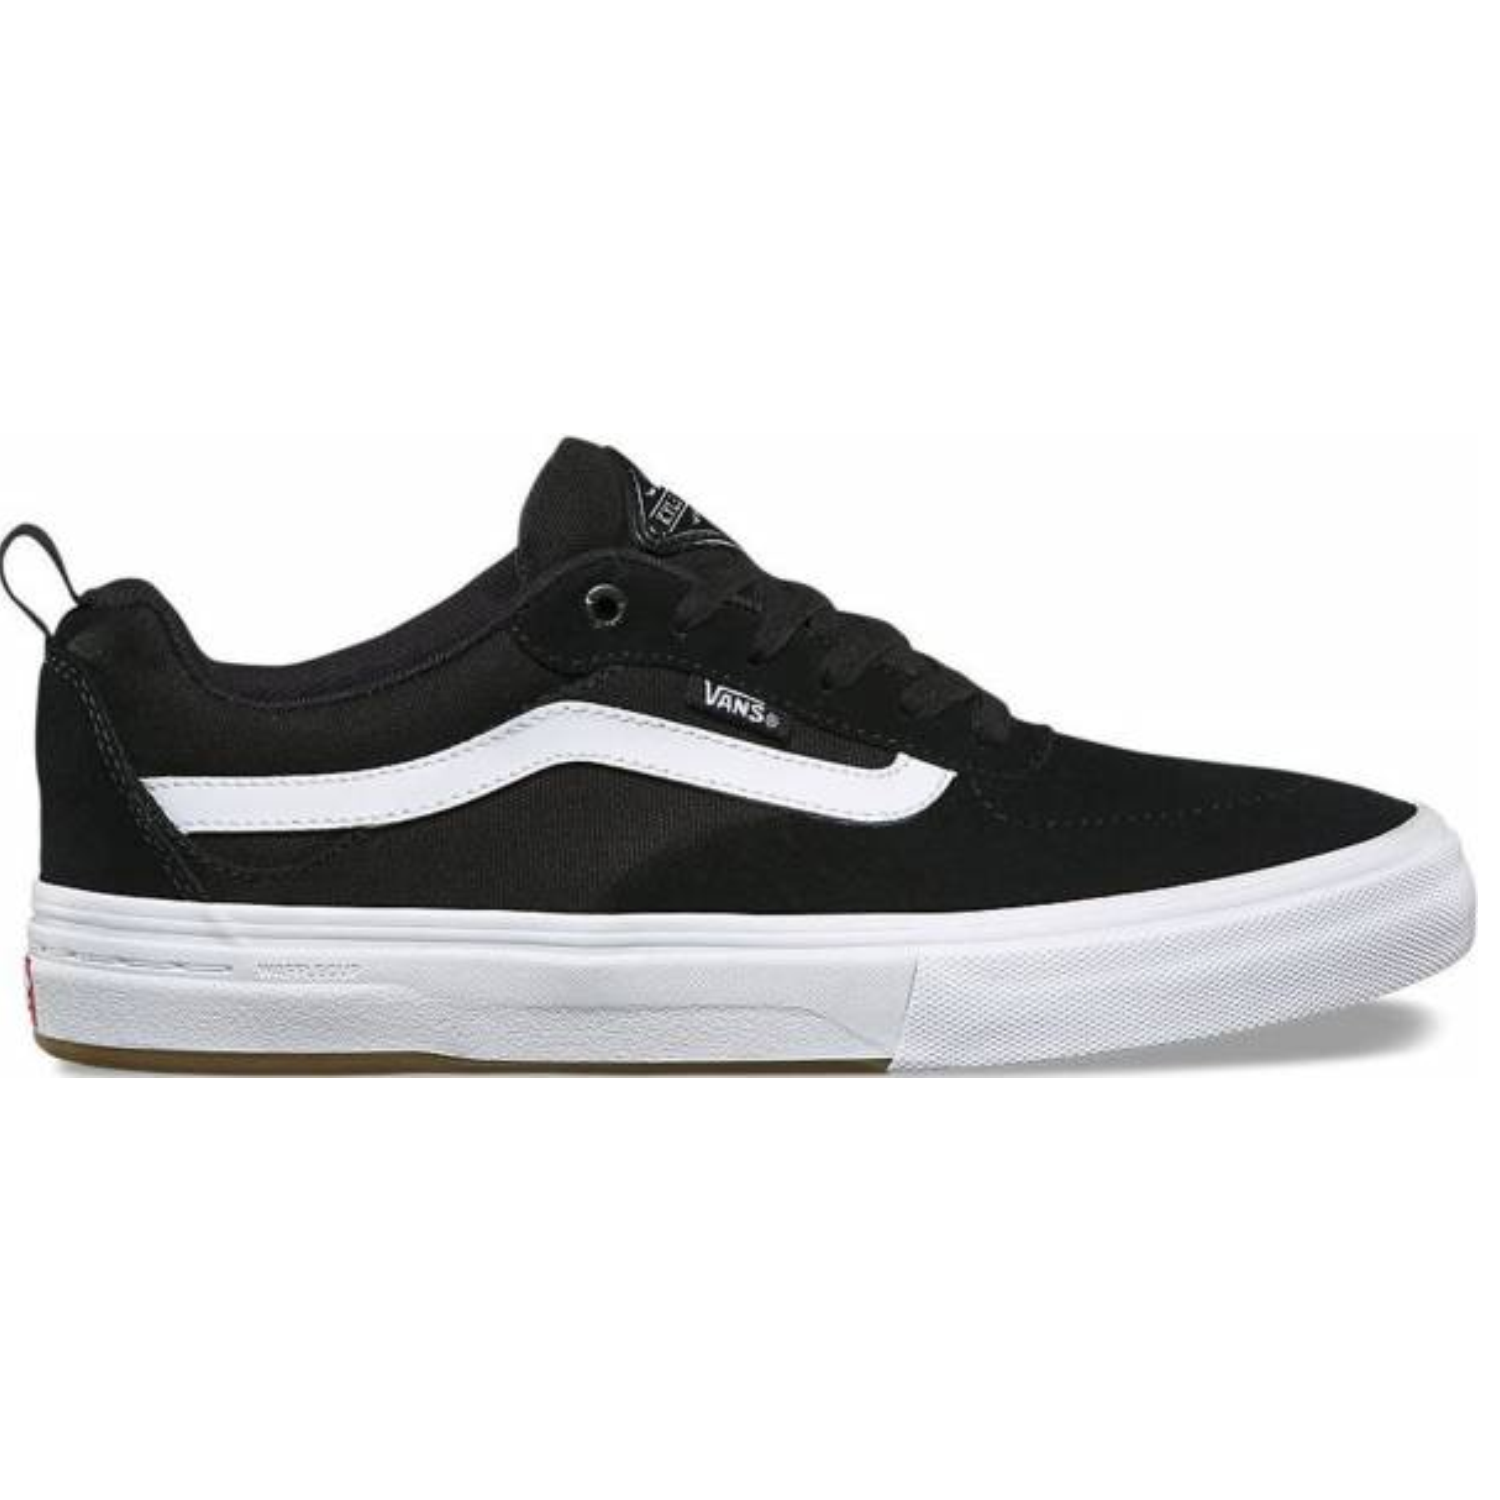 Zapatillas Vans Kyle Walker Pro black/white